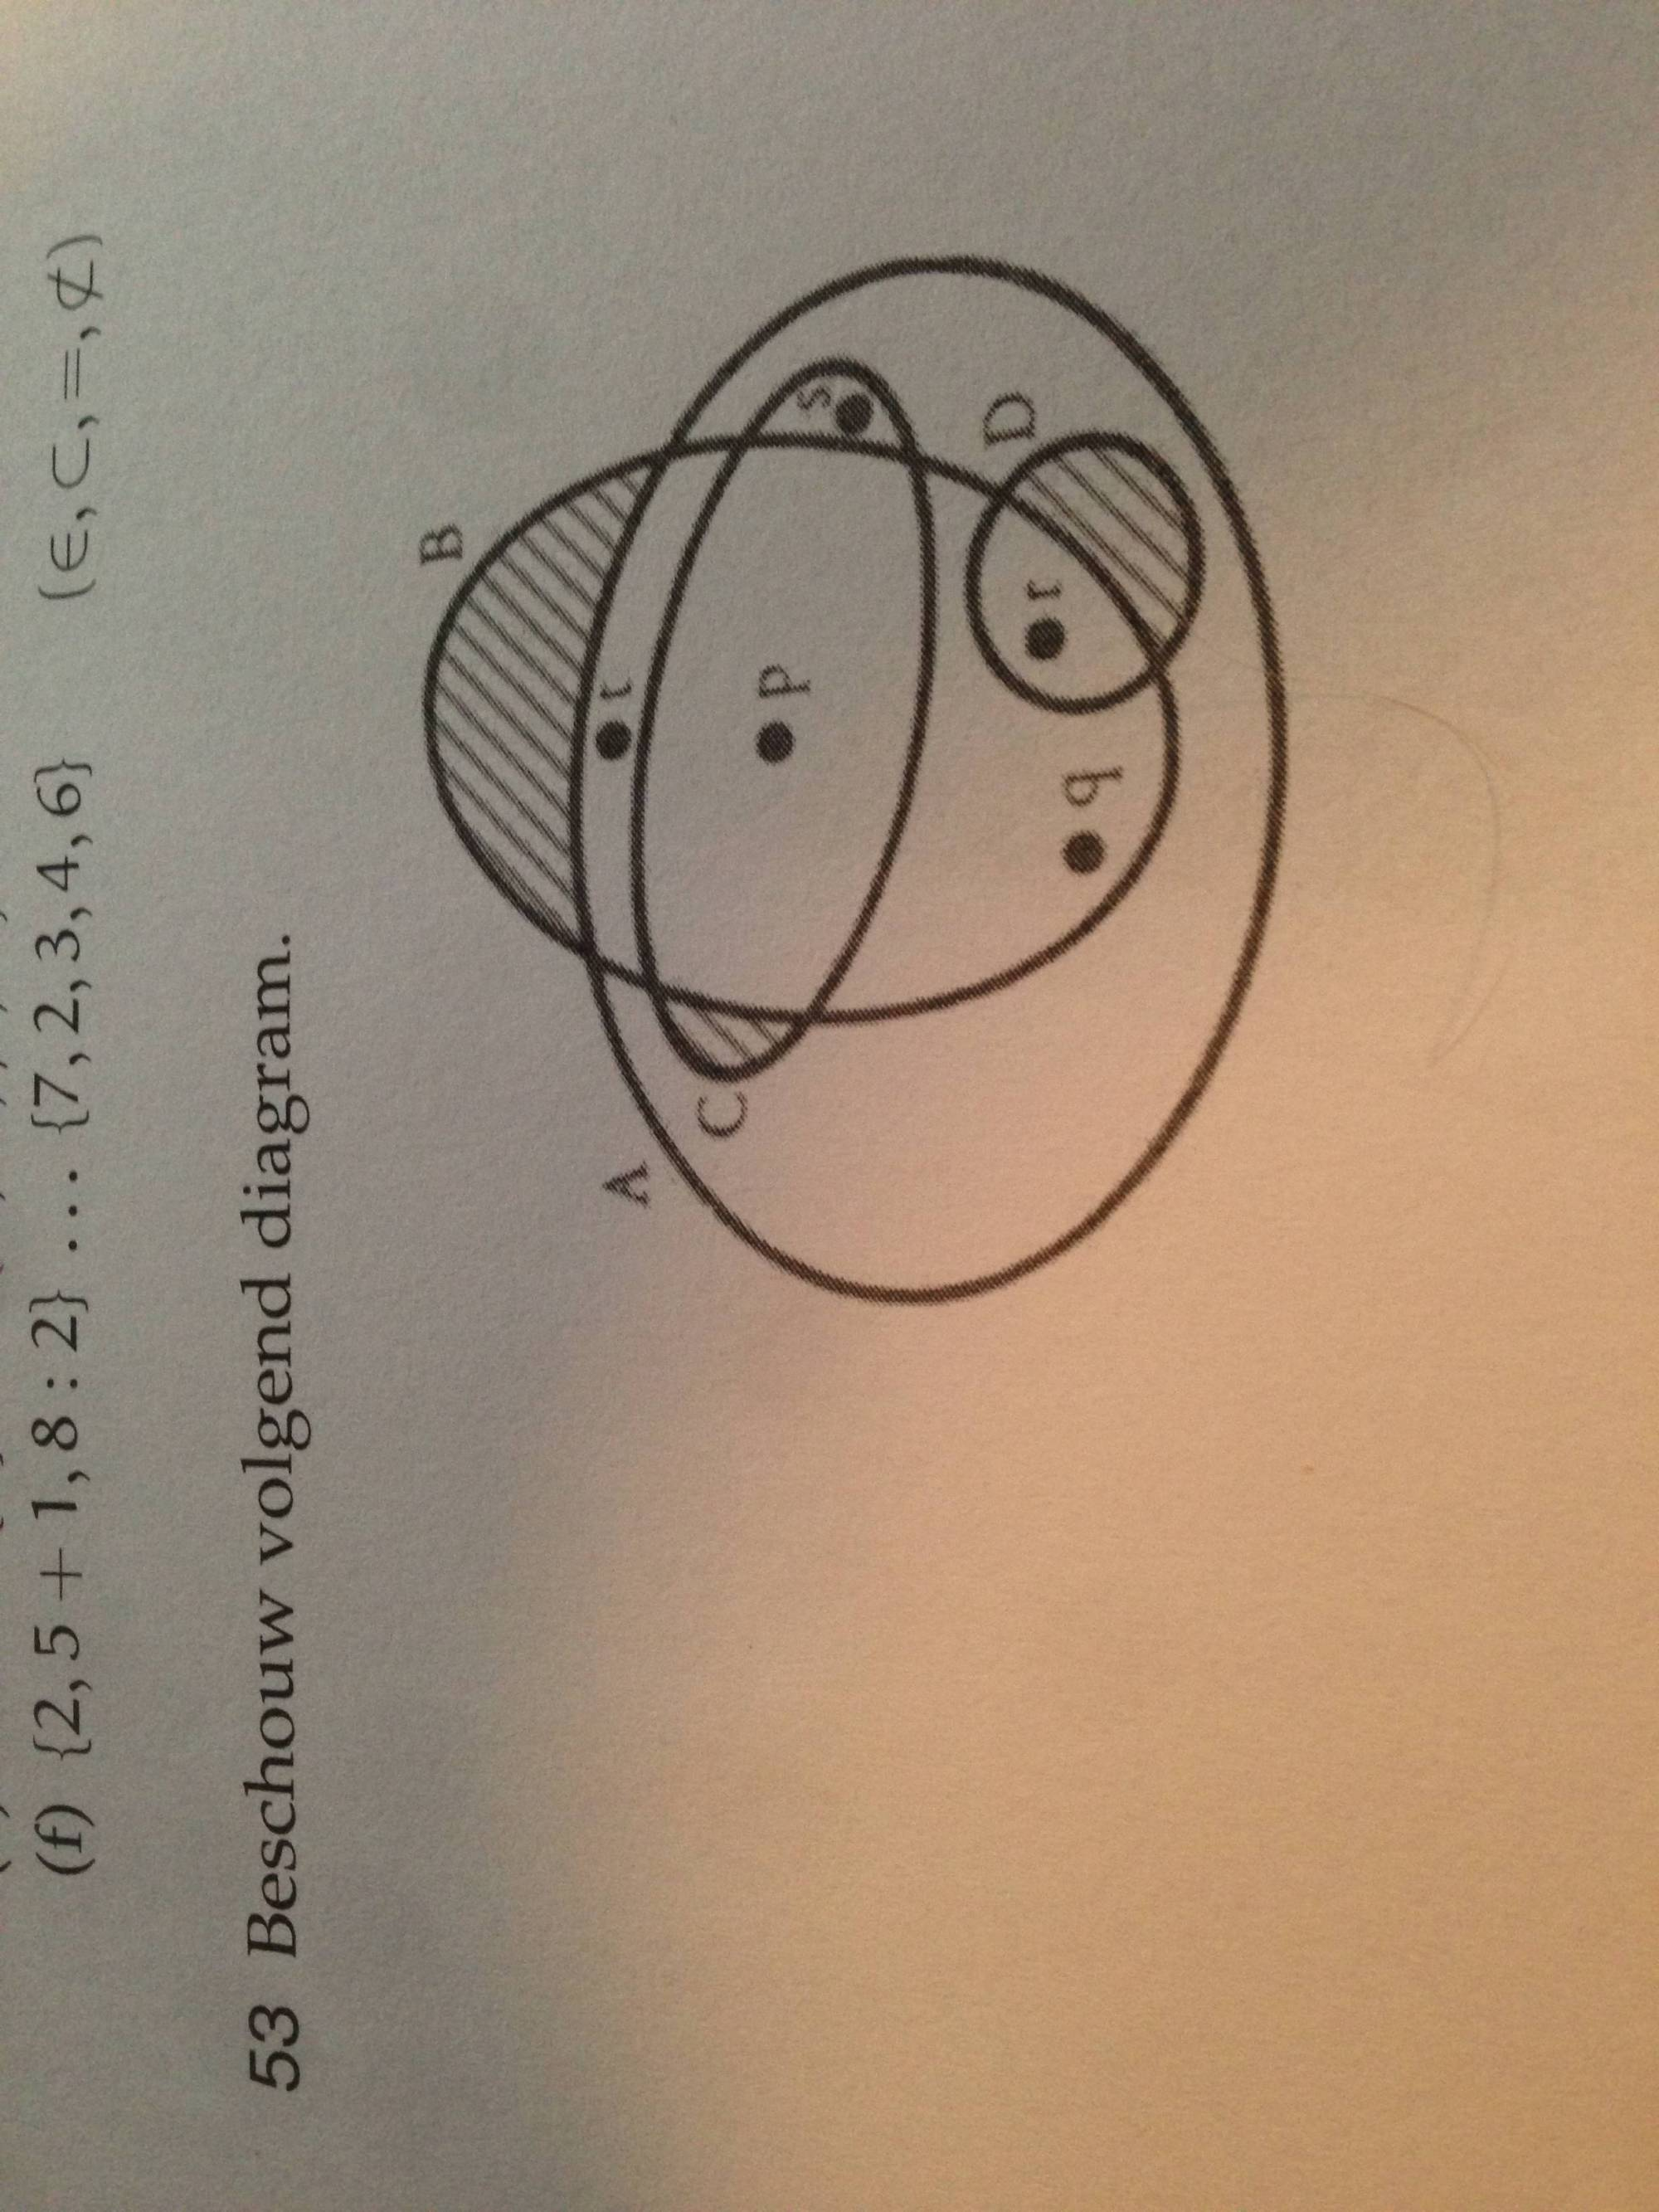 hight resolution of how do i show that a set is an element of a set in a venn diagram